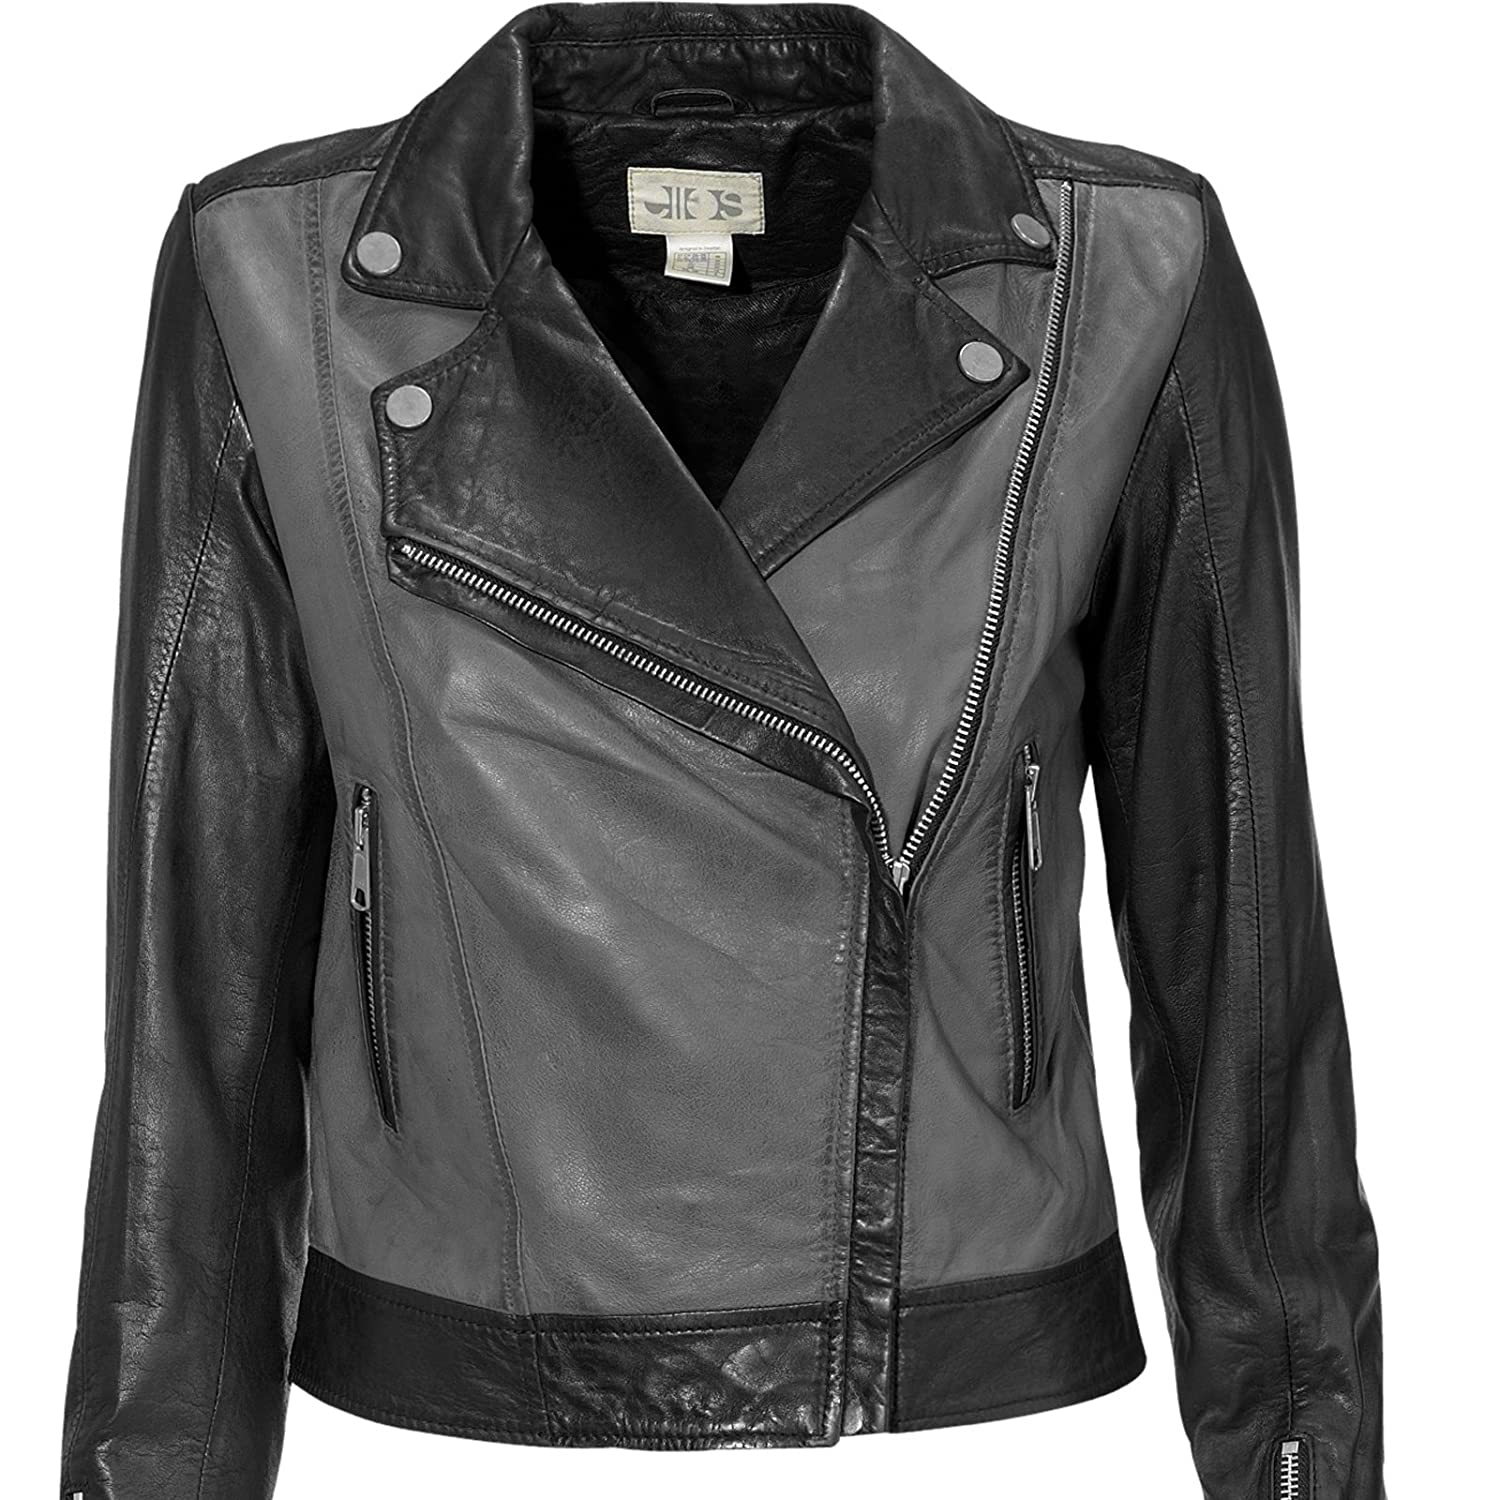 CLEARANCE Biker Jacket Women 100% Real Leather in Black and Grey ...